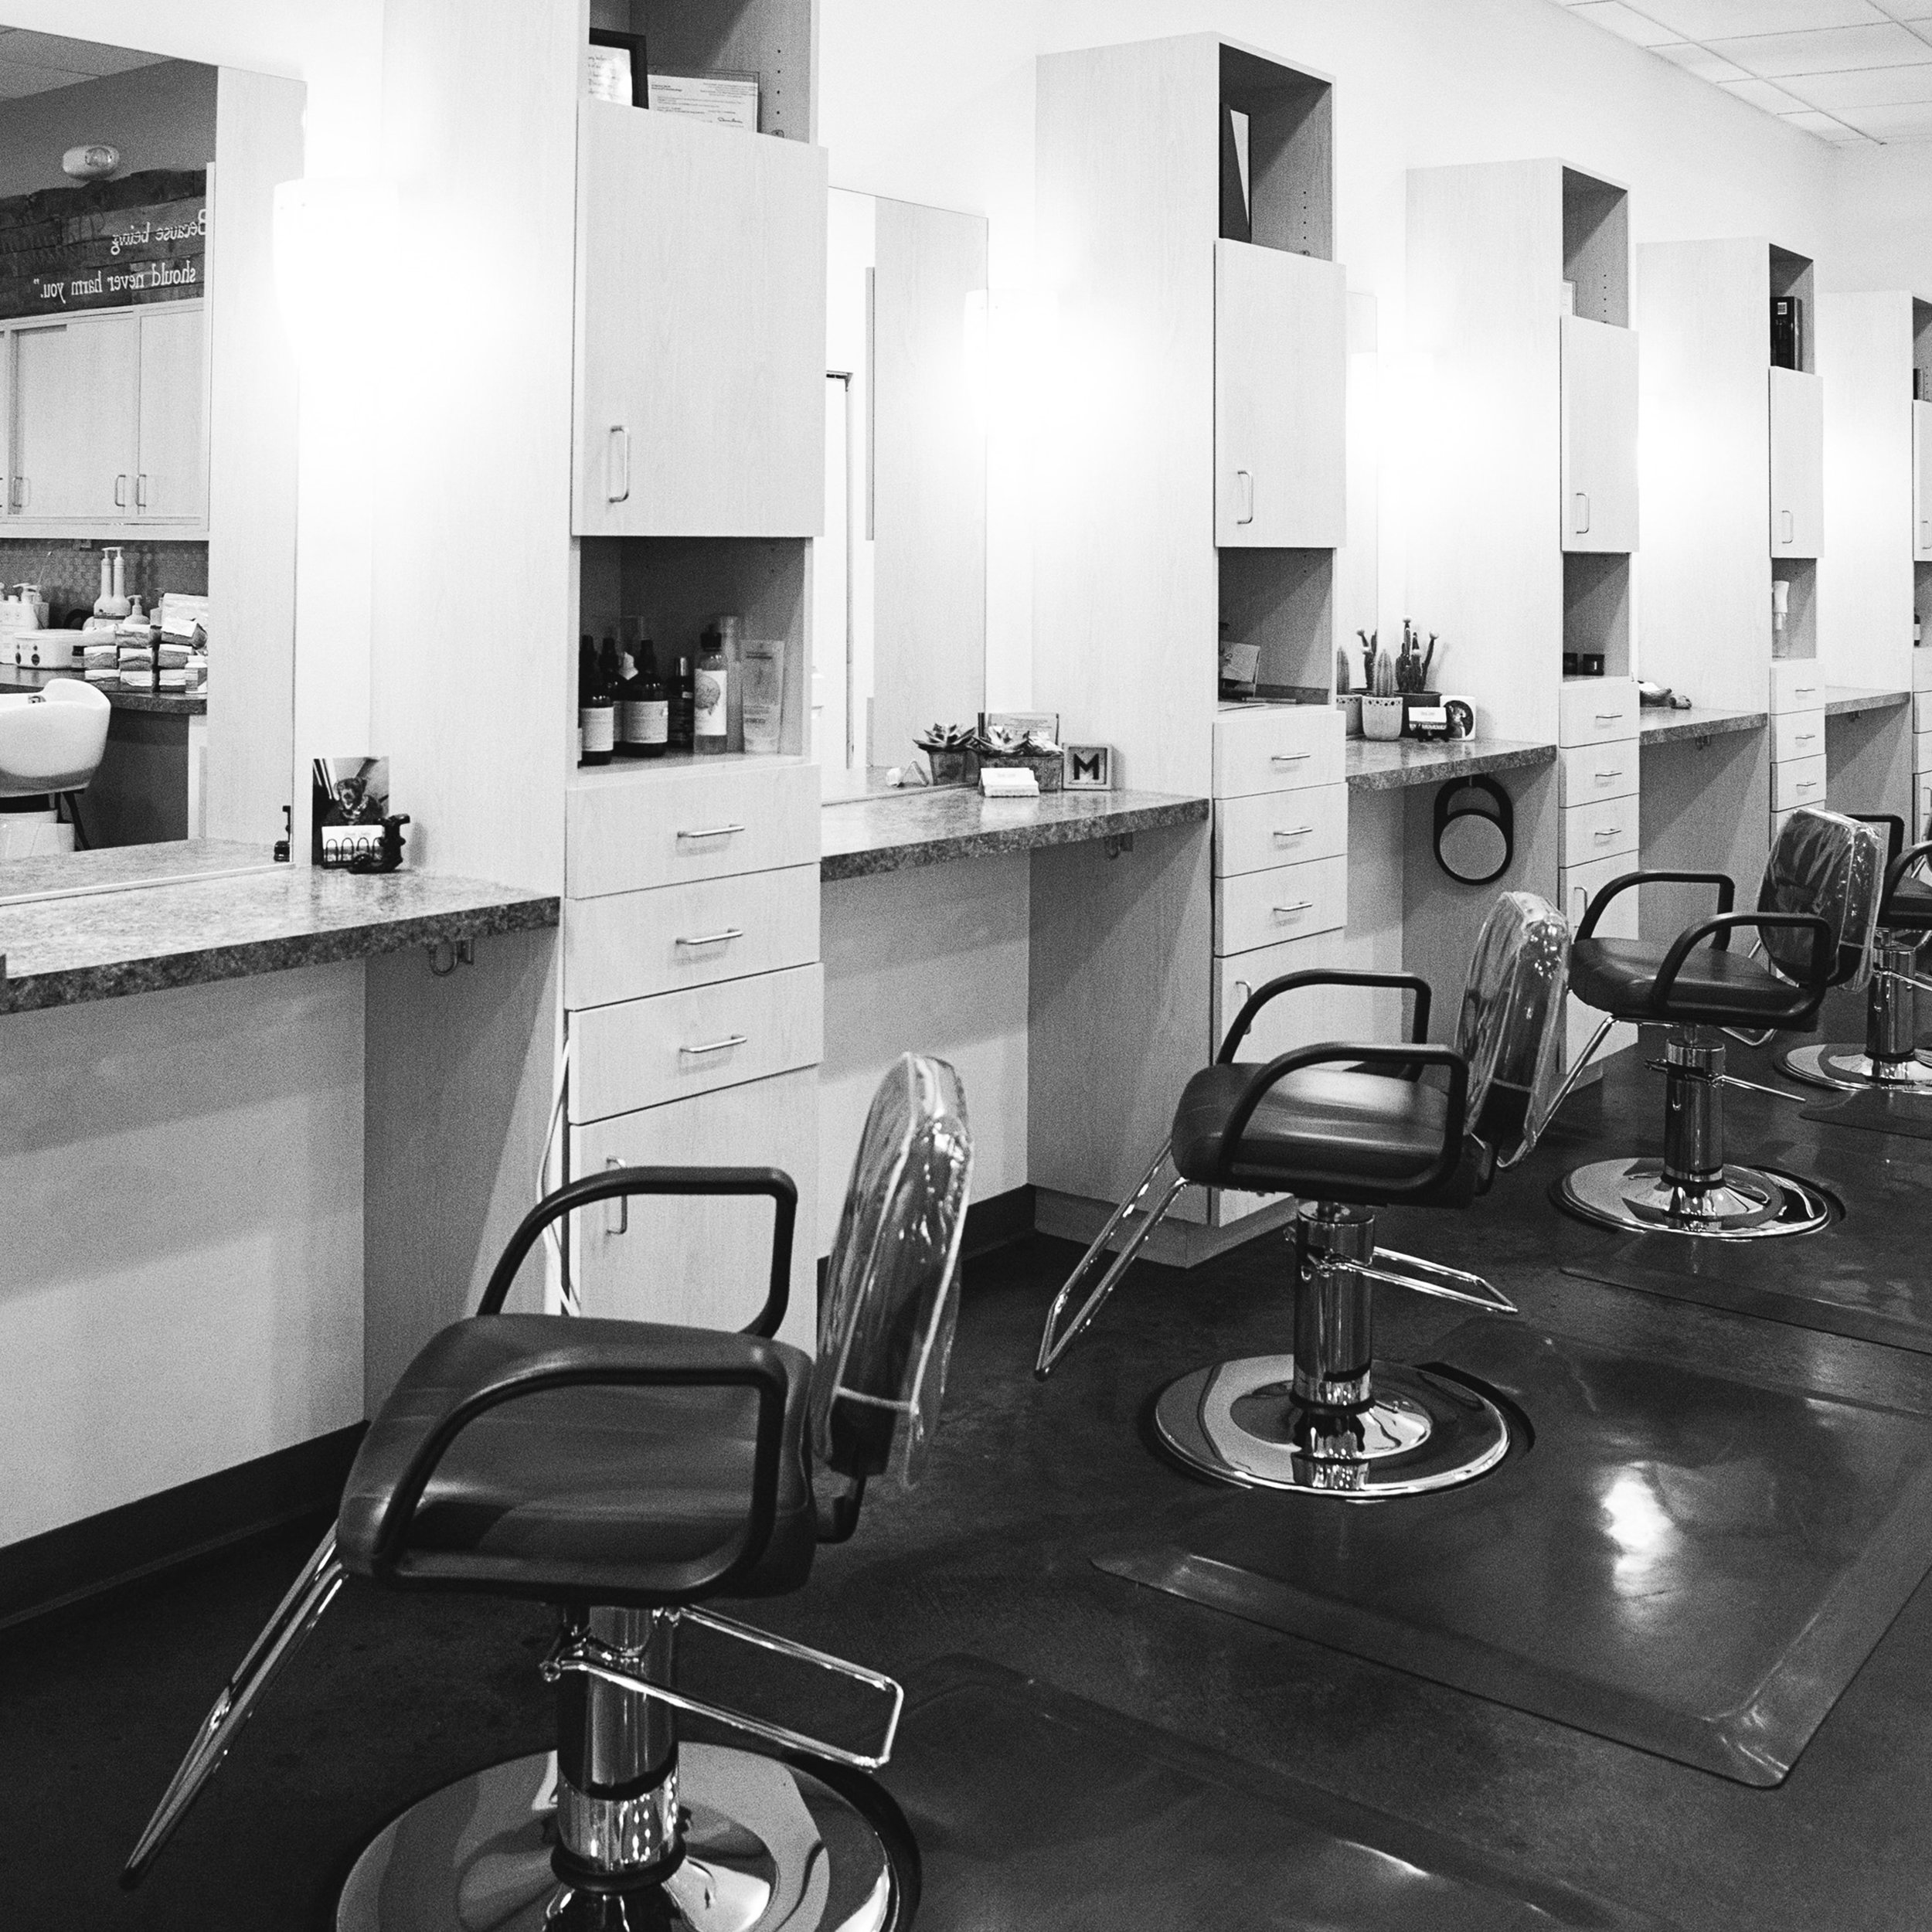 Salon & Spa - Verde Salon & Spa is proud to be a non-toxic salon and spa environment.